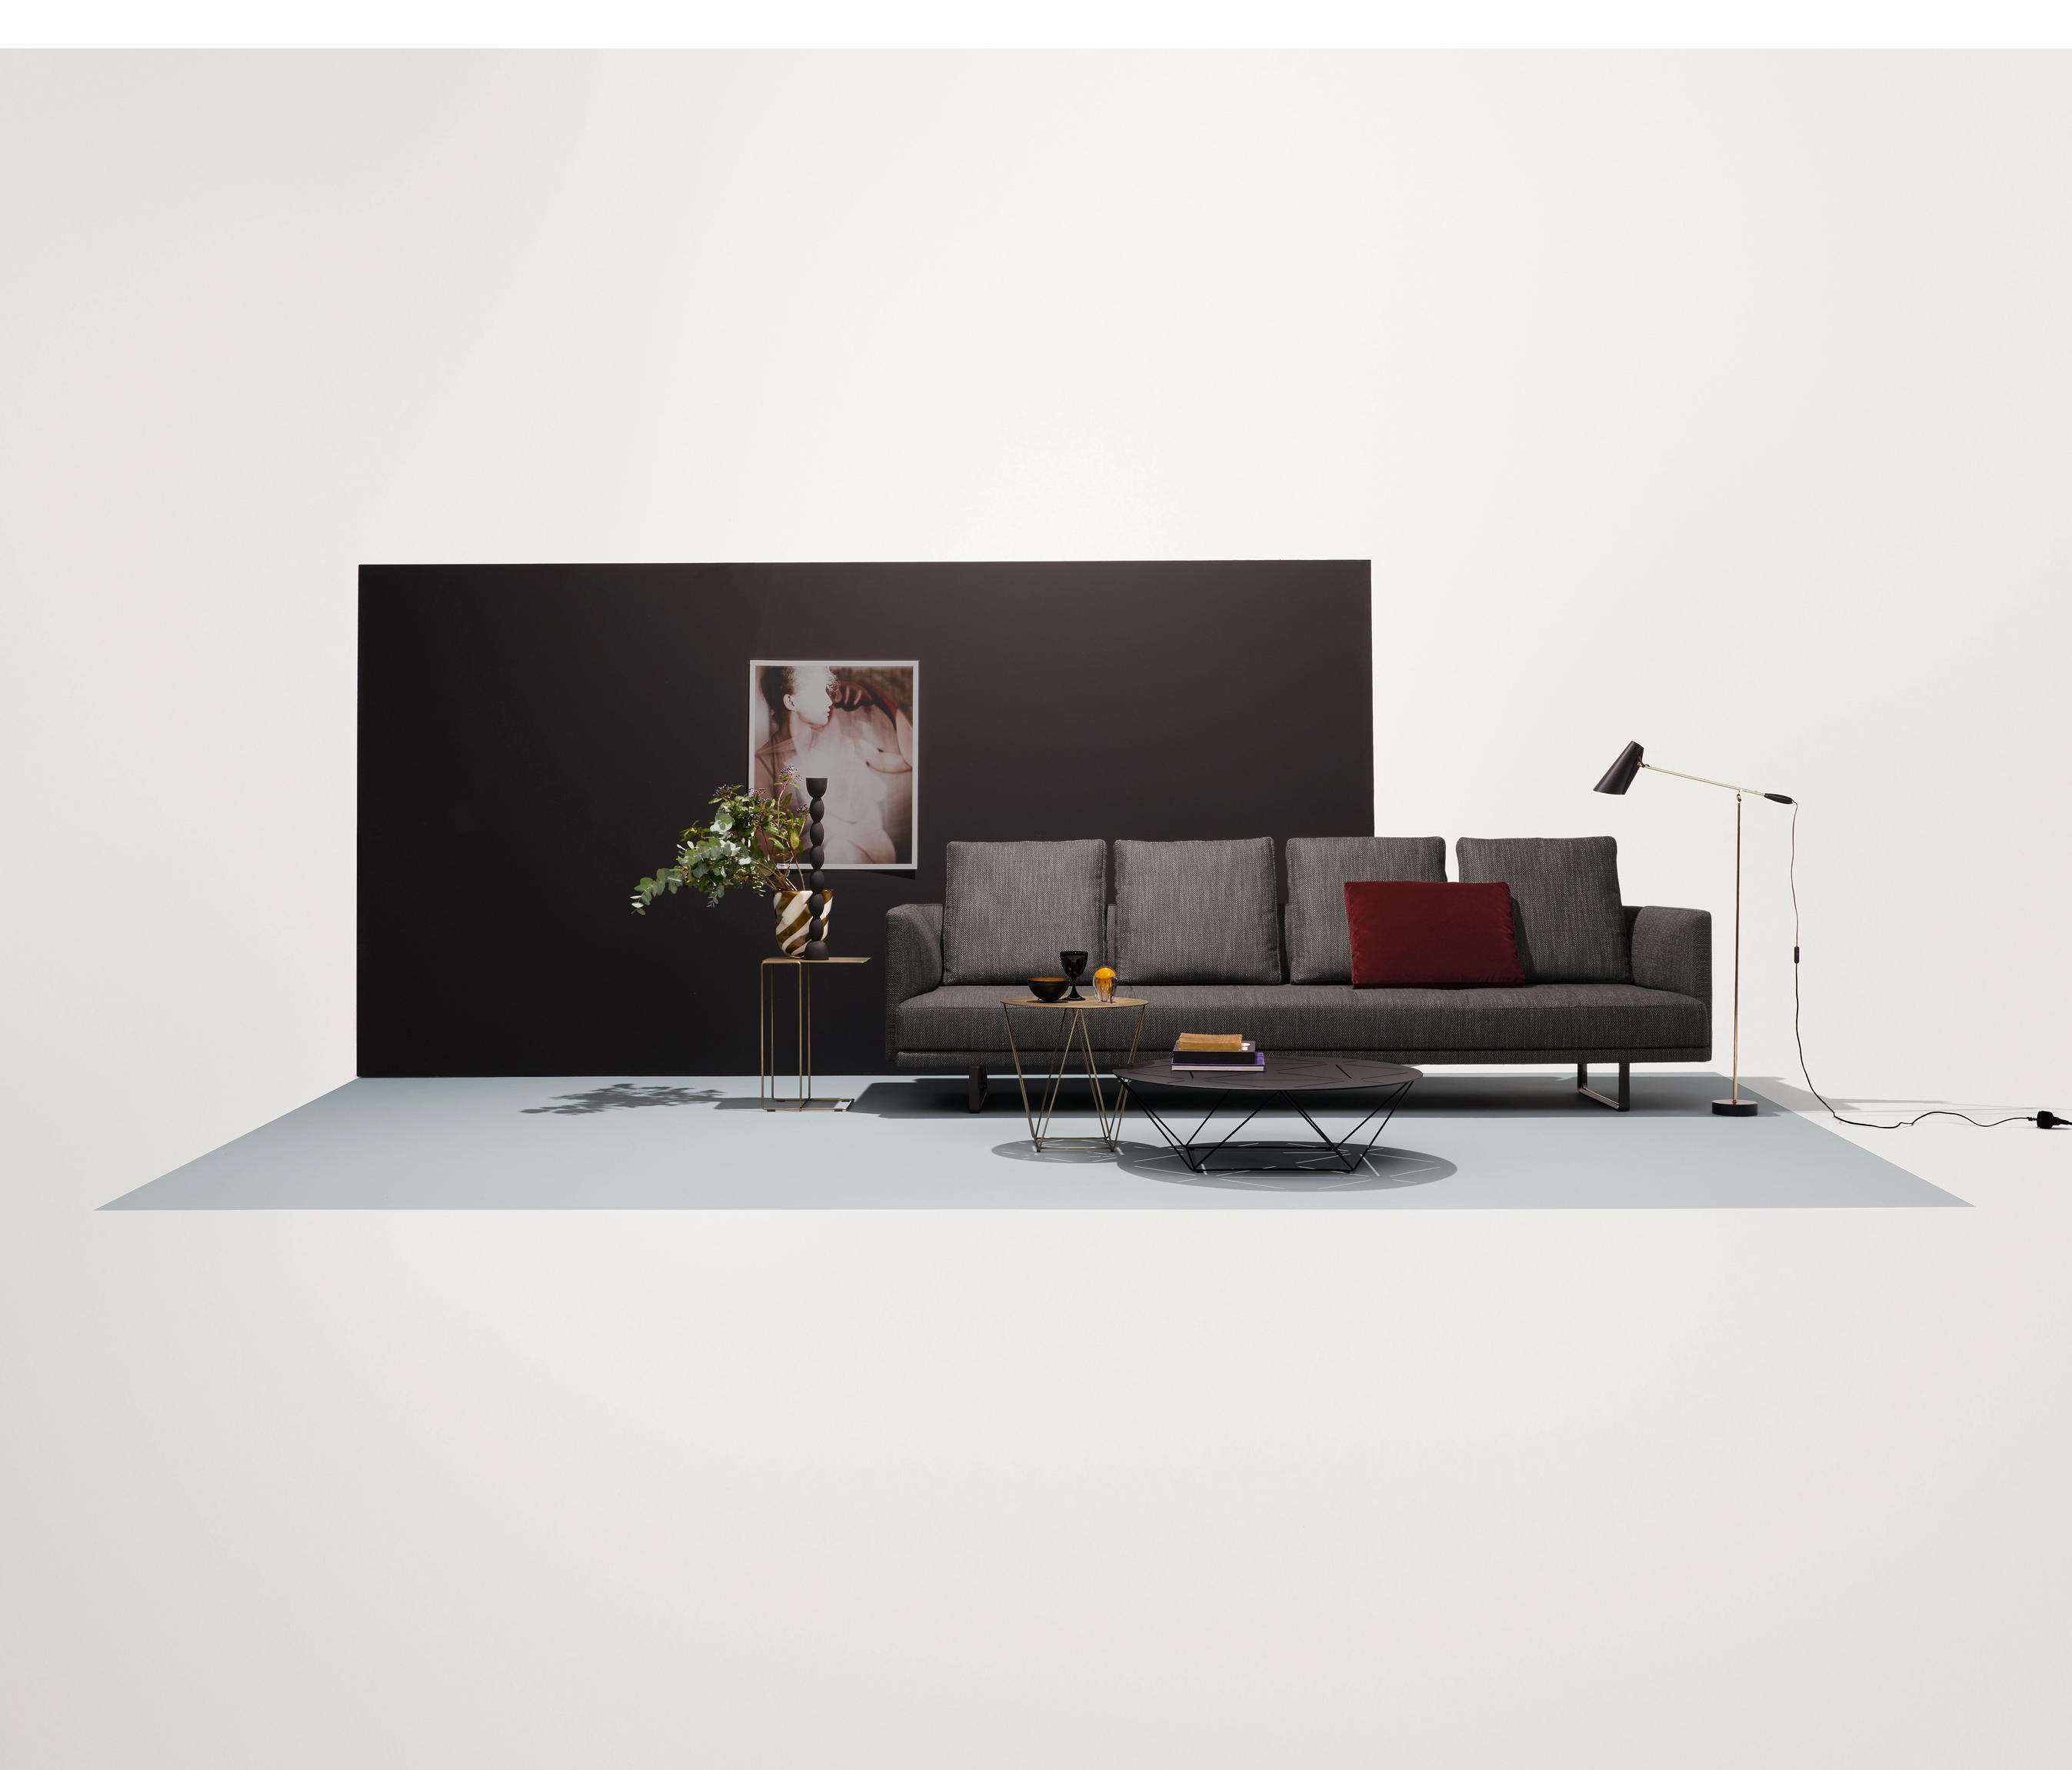 Prime time sofa sofas from walter knoll architonic prime time sofa by walter knoll parisarafo Gallery